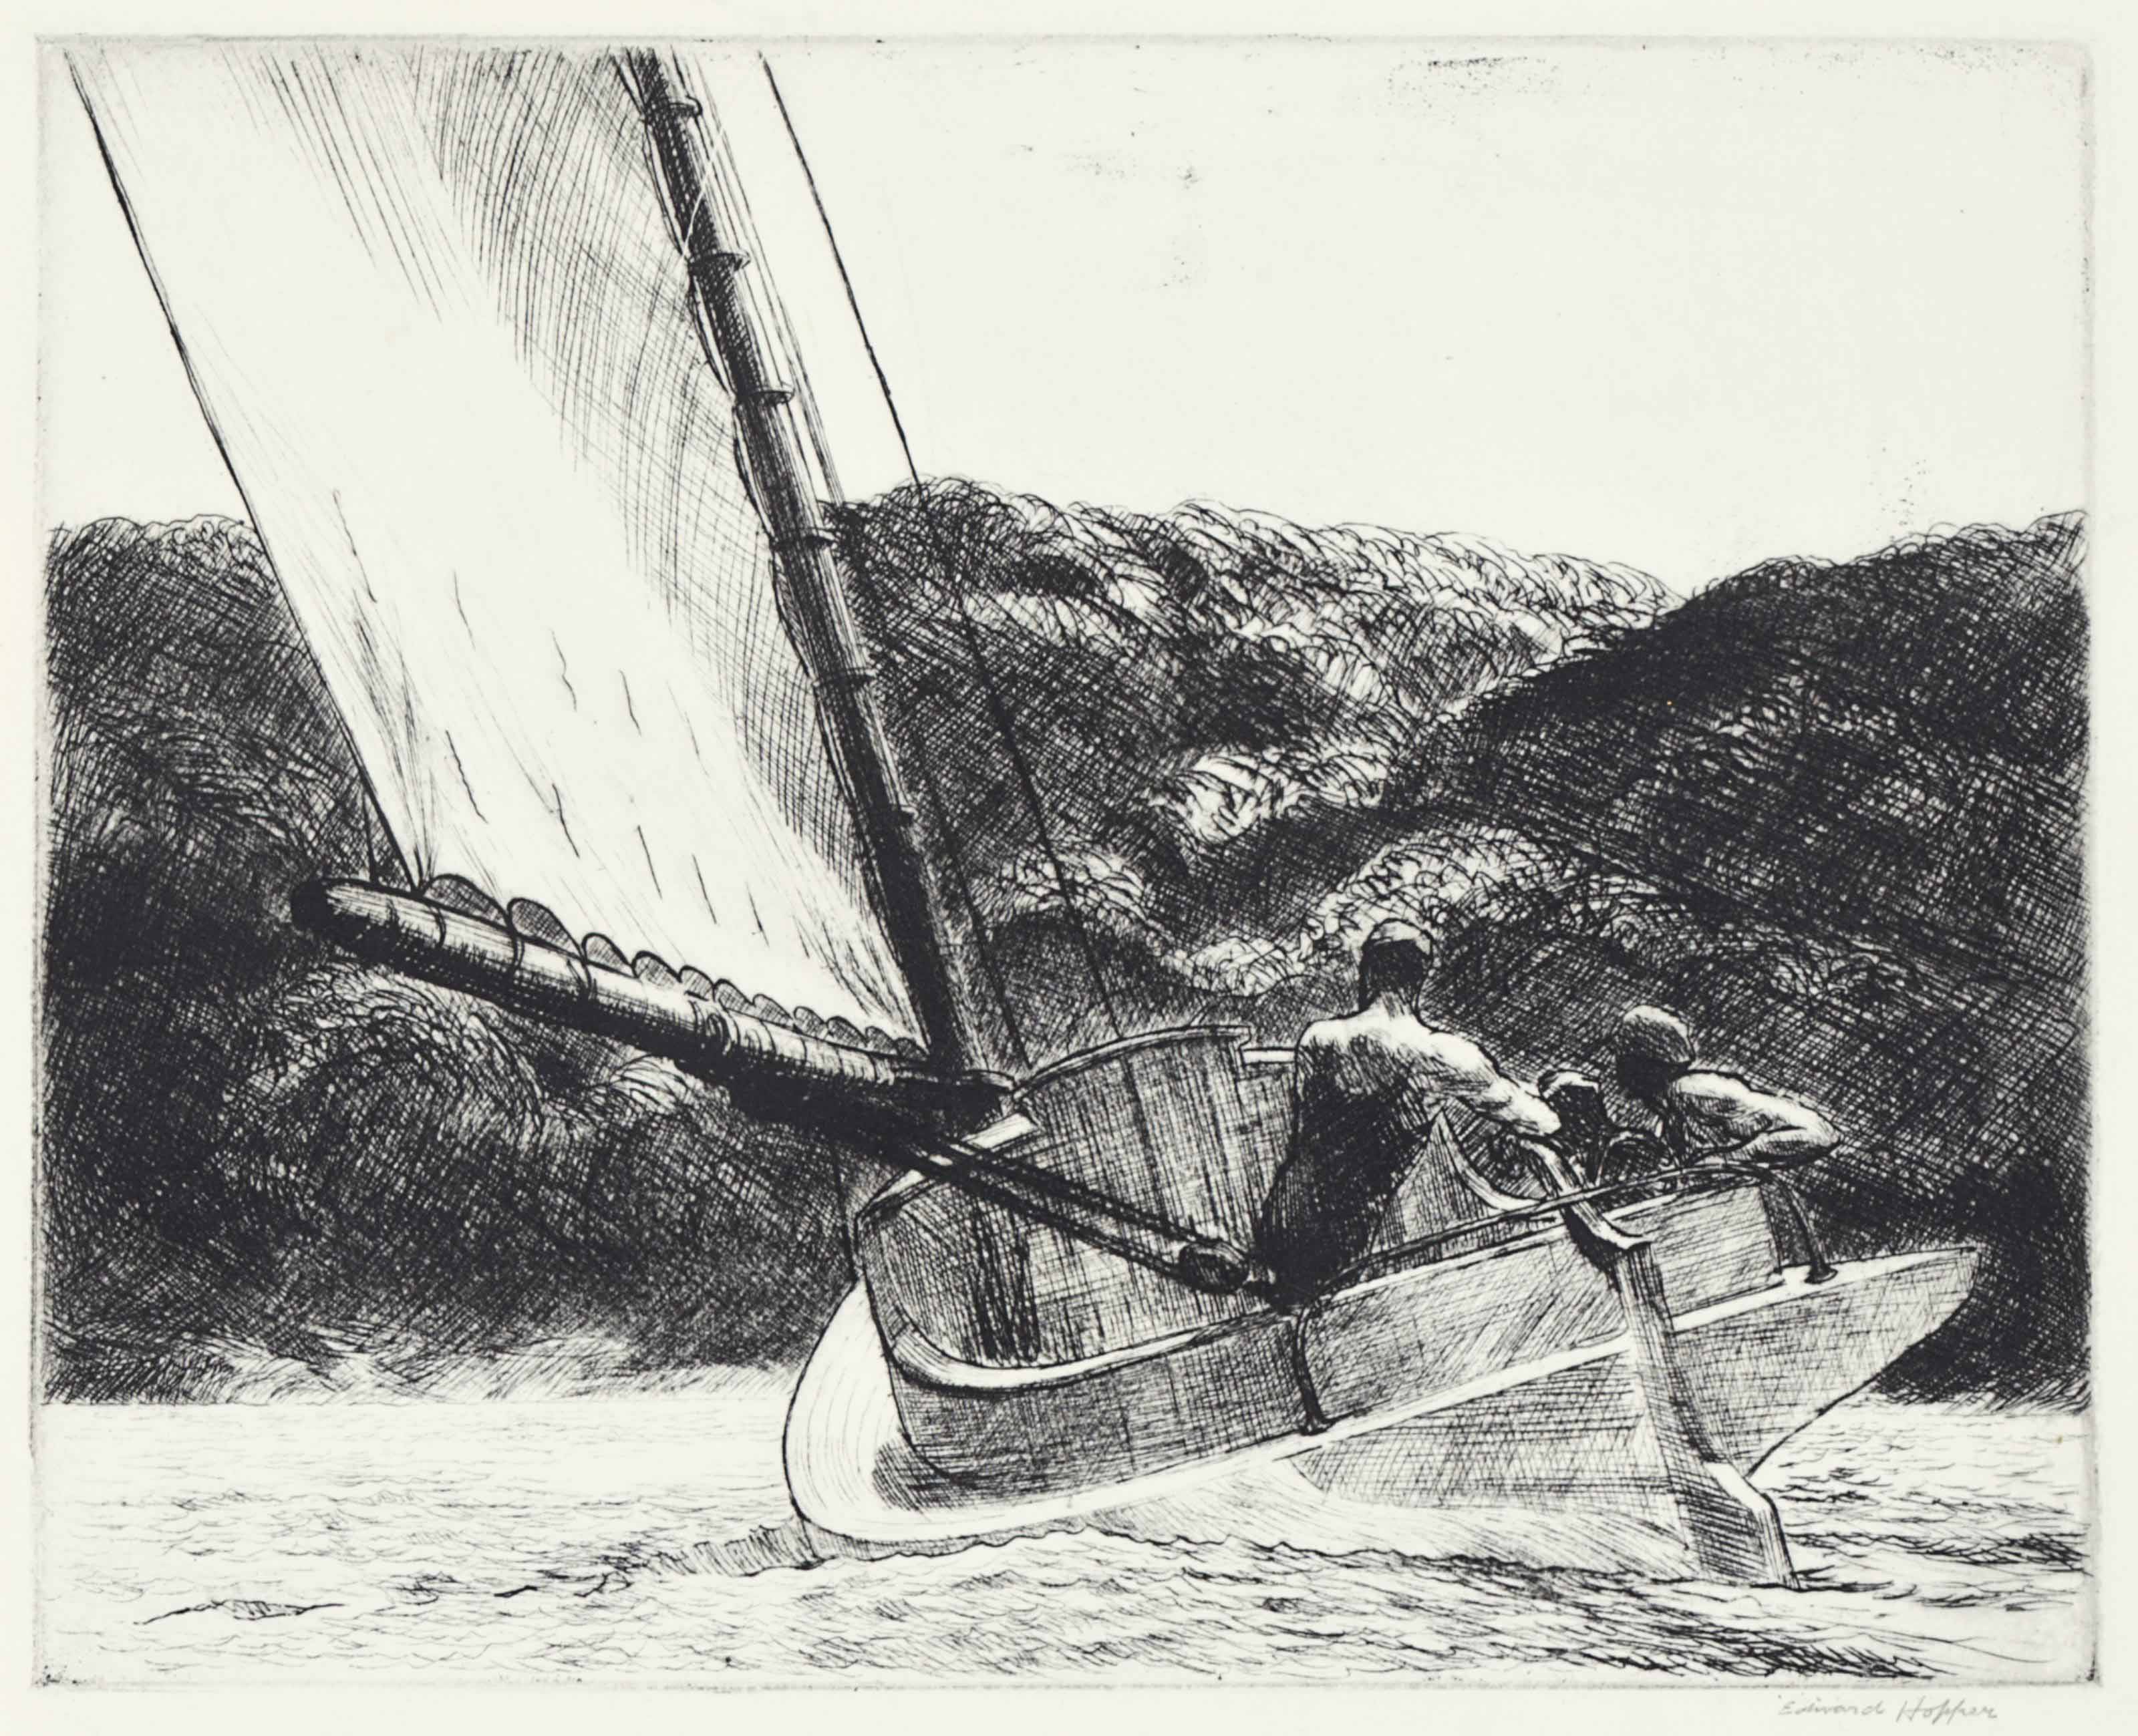 Two Point Perspective Example- Edward Hopper, 'The Catboat', etching on paper, 200 x 250 mm, image curtesy of Christies